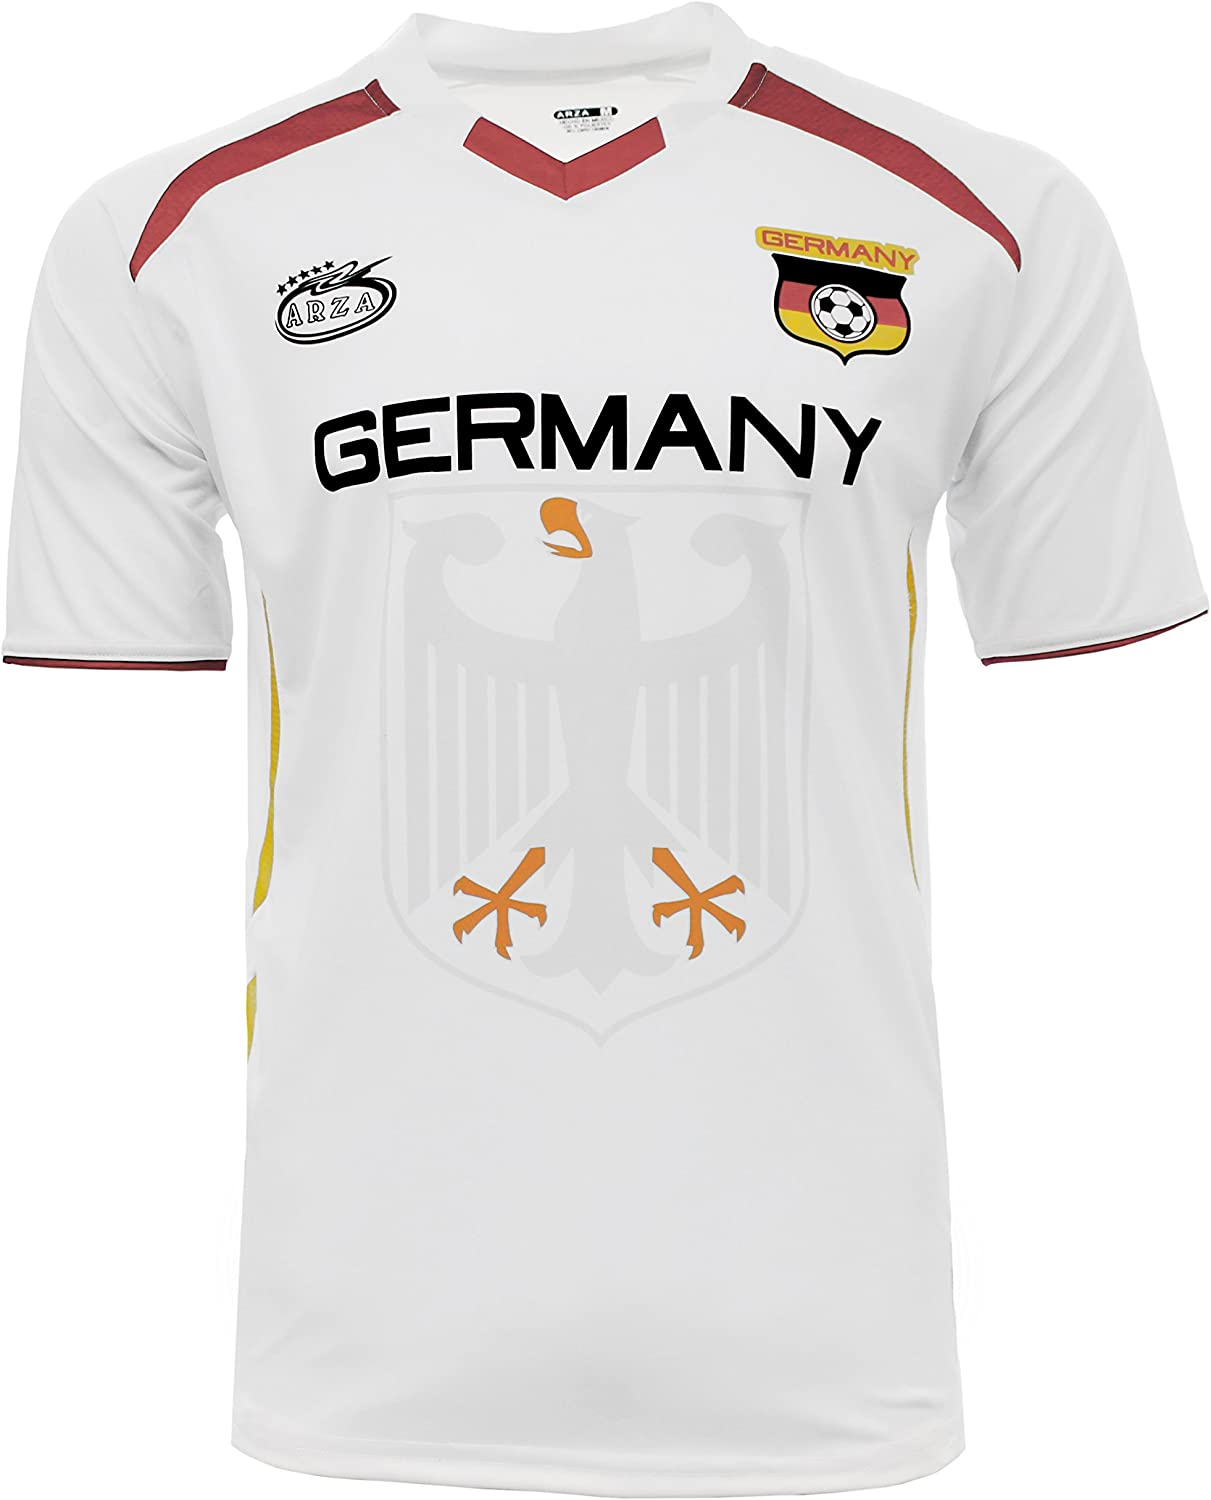 Germany Jersey Arza Design Home and Away